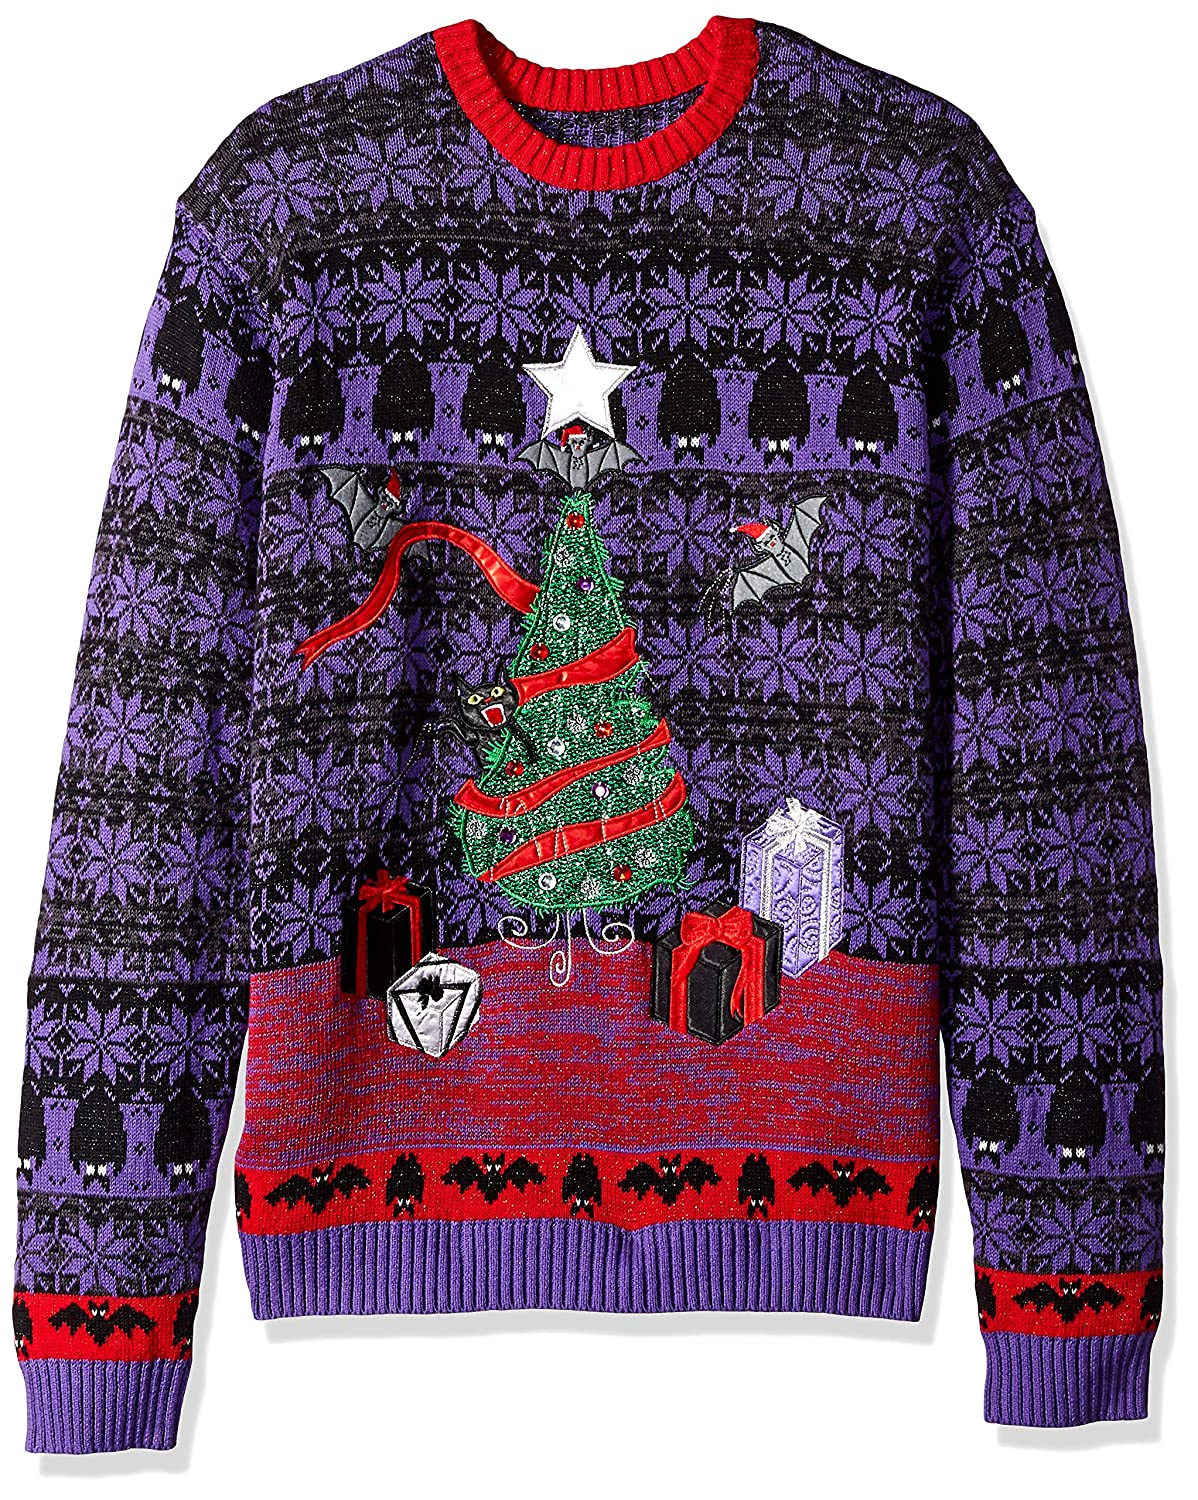 Blizzard Bay Men's Bats Themed Ugly Christmas Sweater